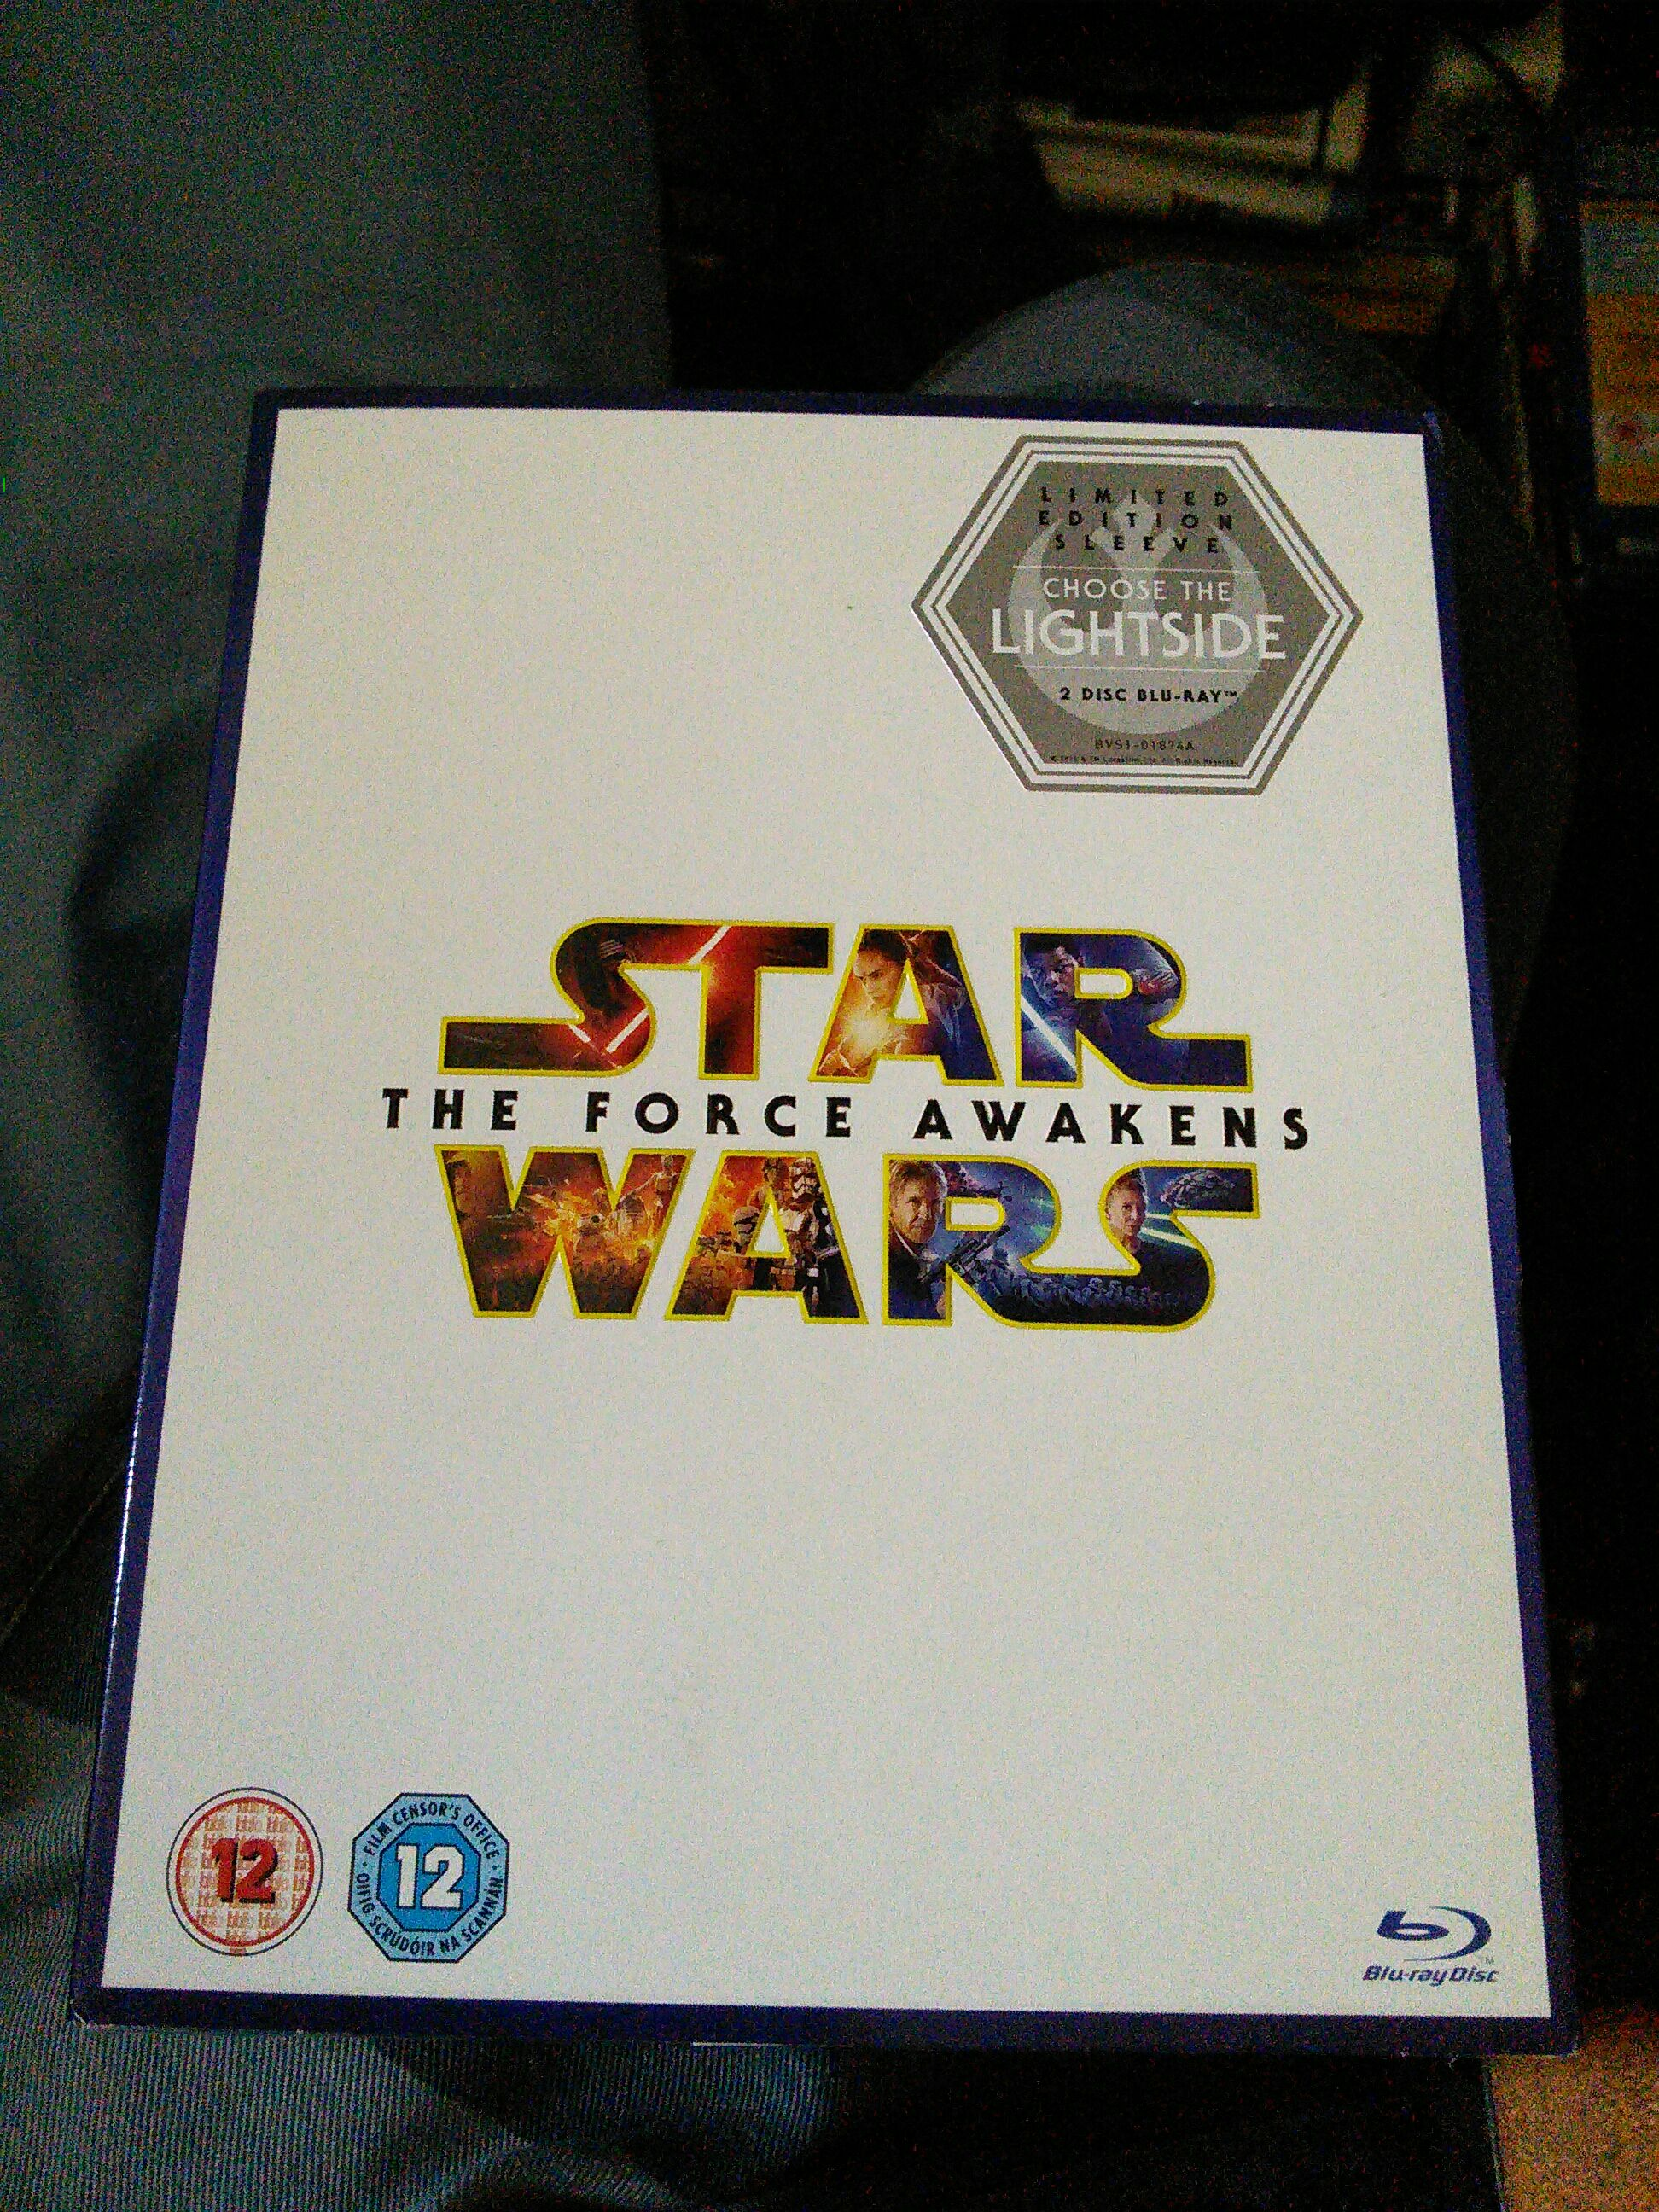 Star Wars Episode VII: The Force Awakens -  cover